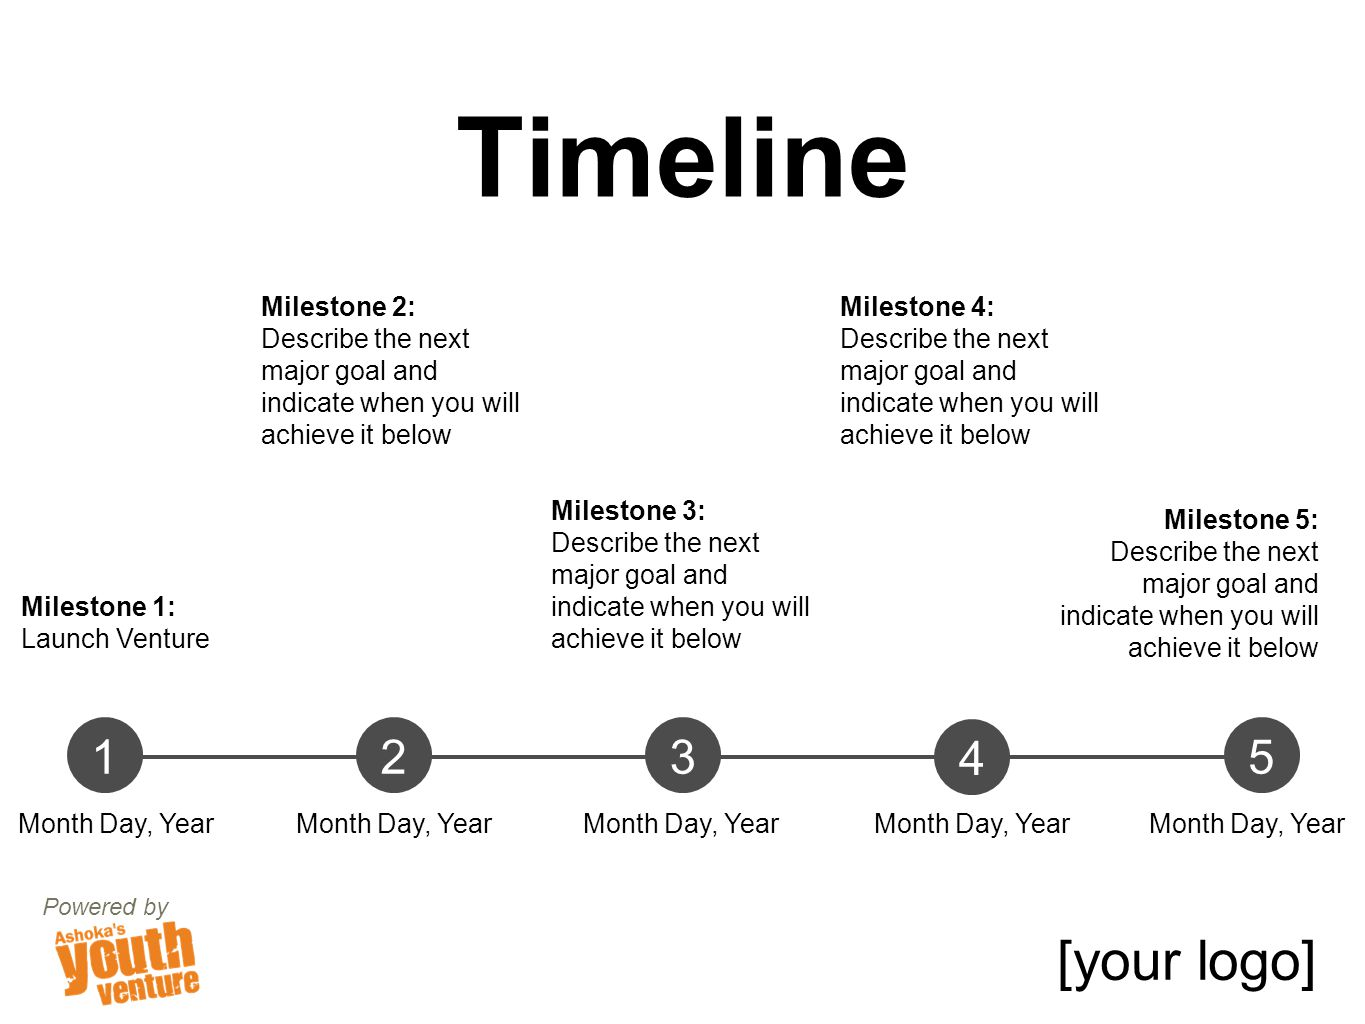 Timeline Powered by [your logo] 123 4 5 Month Day, Year Milestone 1: Launch Venture Milestone 2: Describe the next major goal and indicate when you will achieve it below Milestone 3: Describe the next major goal and indicate when you will achieve it below Milestone 4: Describe the next major goal and indicate when you will achieve it below Milestone 5: Describe the next major goal and indicate when you will achieve it below